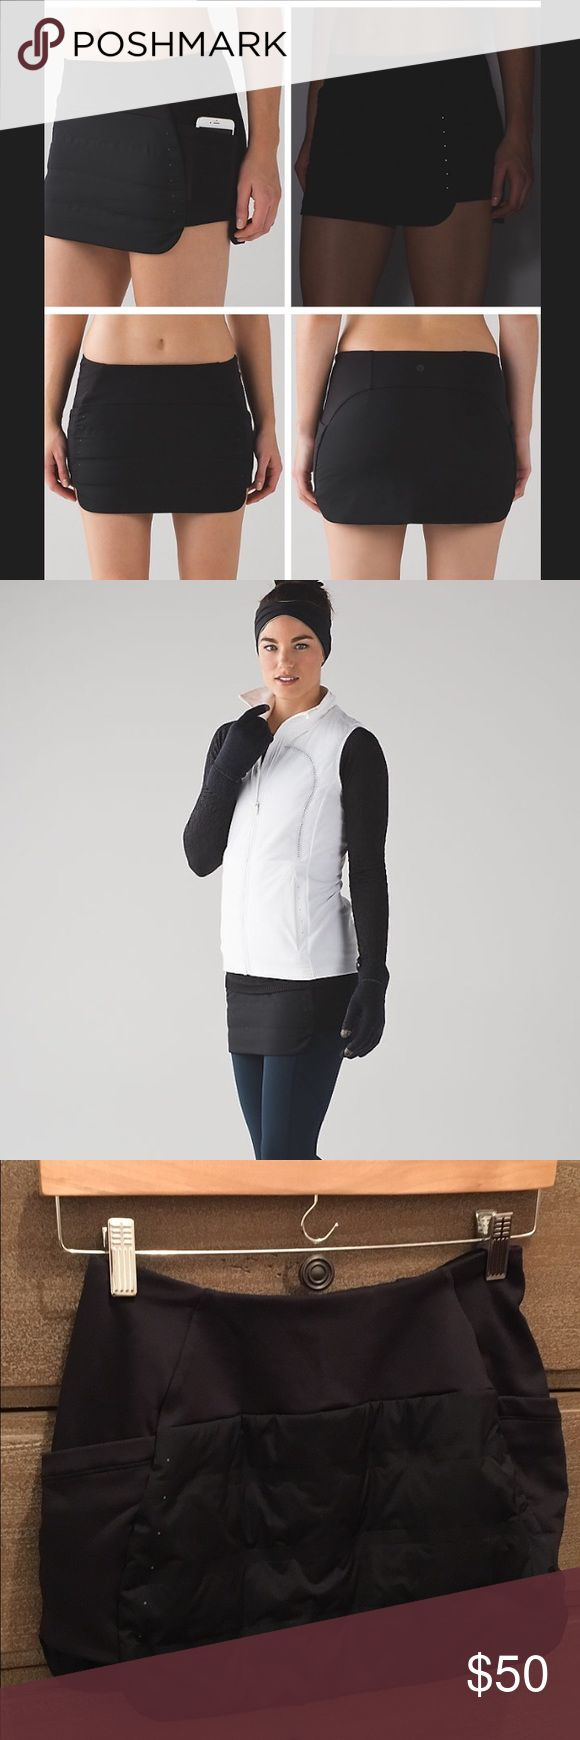 Lululemon Run for Cold Skirt Black size 4. SOLD OUT.  Layer this Primaloft® Active skirt over your tights for added warmth on winter runs. Stretch Glyde and Fleece fabric are both water-repellent. Super chic, and warm! like-new worn once. lululemon athletica Skirts